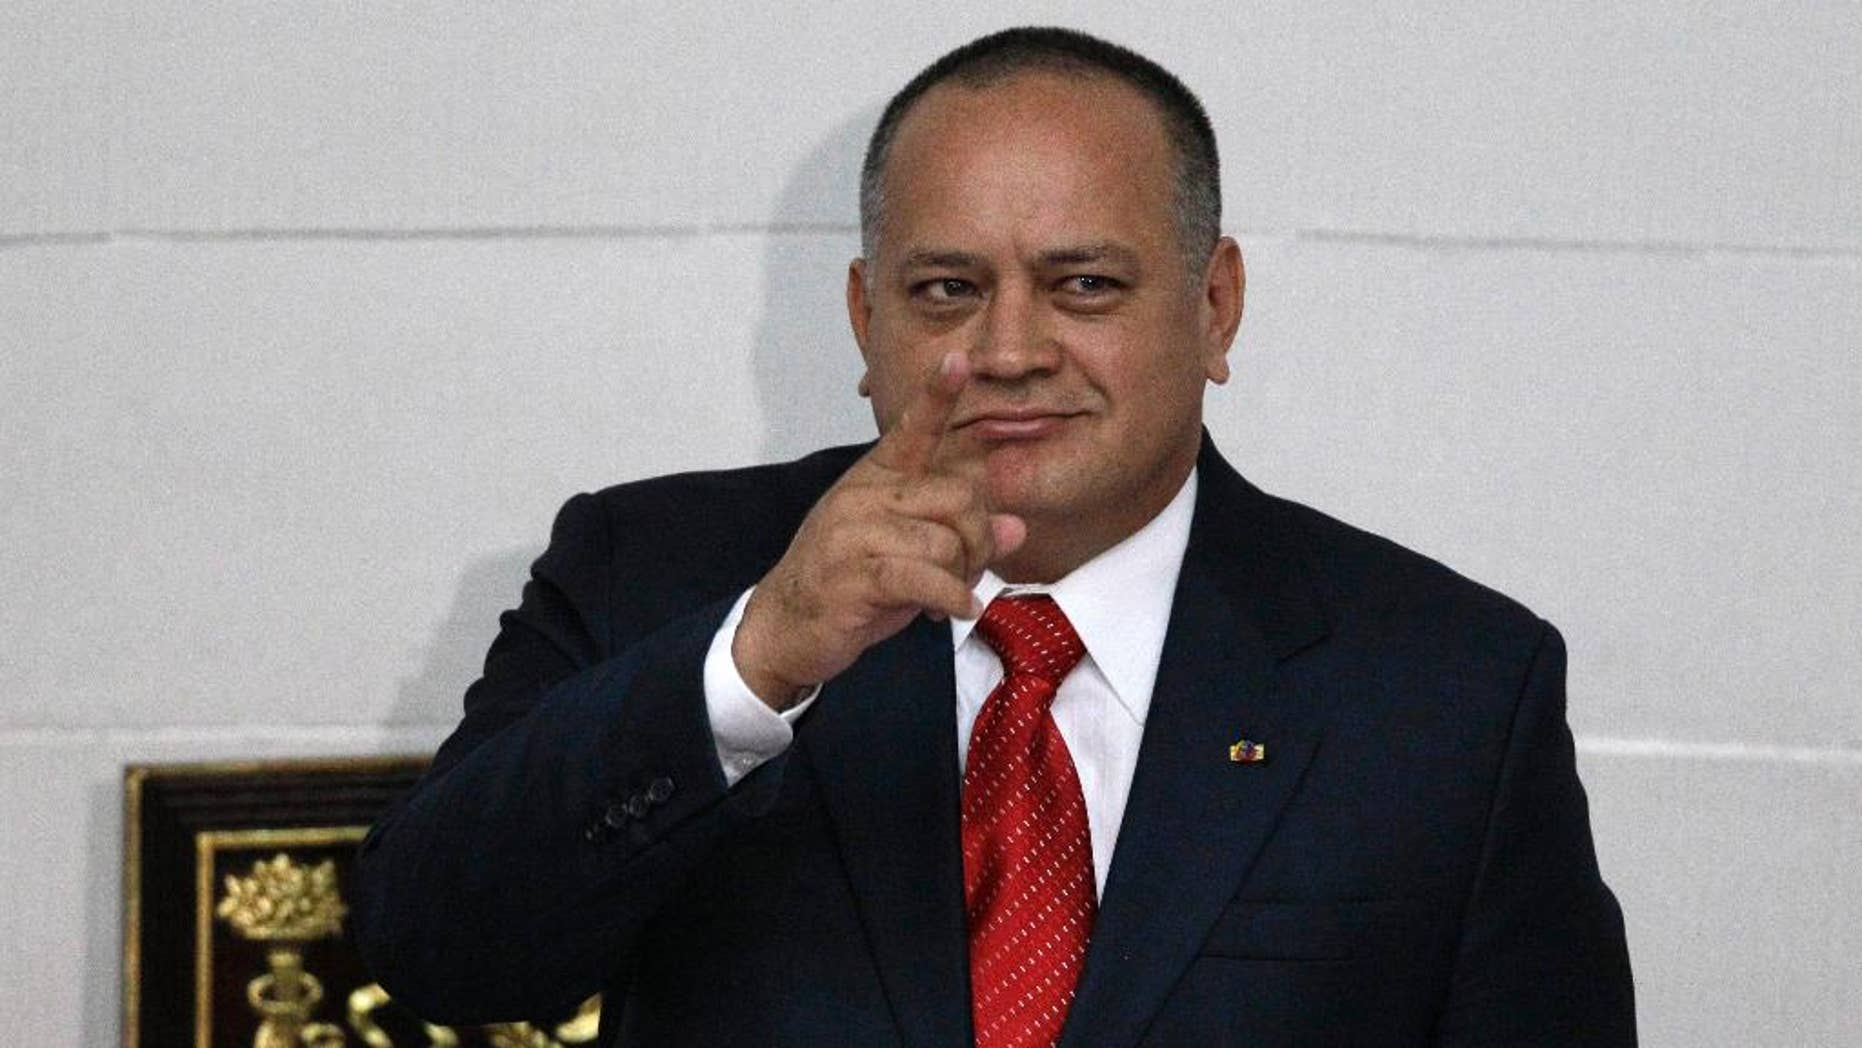 FILE - In this Jan. 5, 2013, file photo, National Assembly President Diosdado Cabello gestures before addressing the National Assembly in Caracas, Venezuela. The powerful head of Venezuela's congress moved Wednesday, Jan. 28, 2015, to distance himself from a bodyguard who defected to the United States and reportedly has implicated his former boss as head of drug ring of political and military officials. (AP Photo/Ariana Cubillos, File)